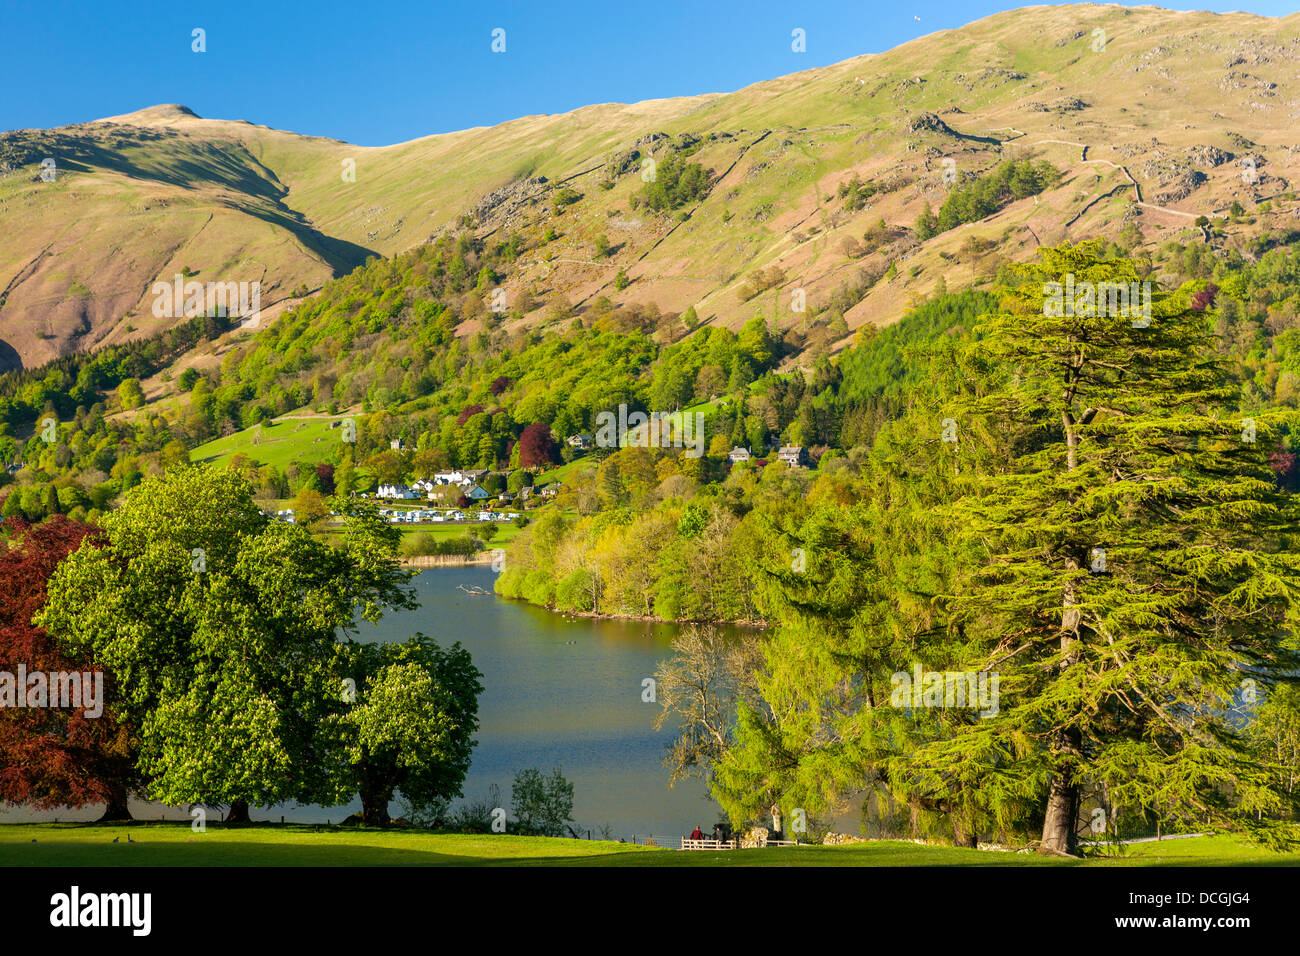 Grasmere Lake, Lake District National Park, Cumbria, England, UK, Europe. - Stock Image